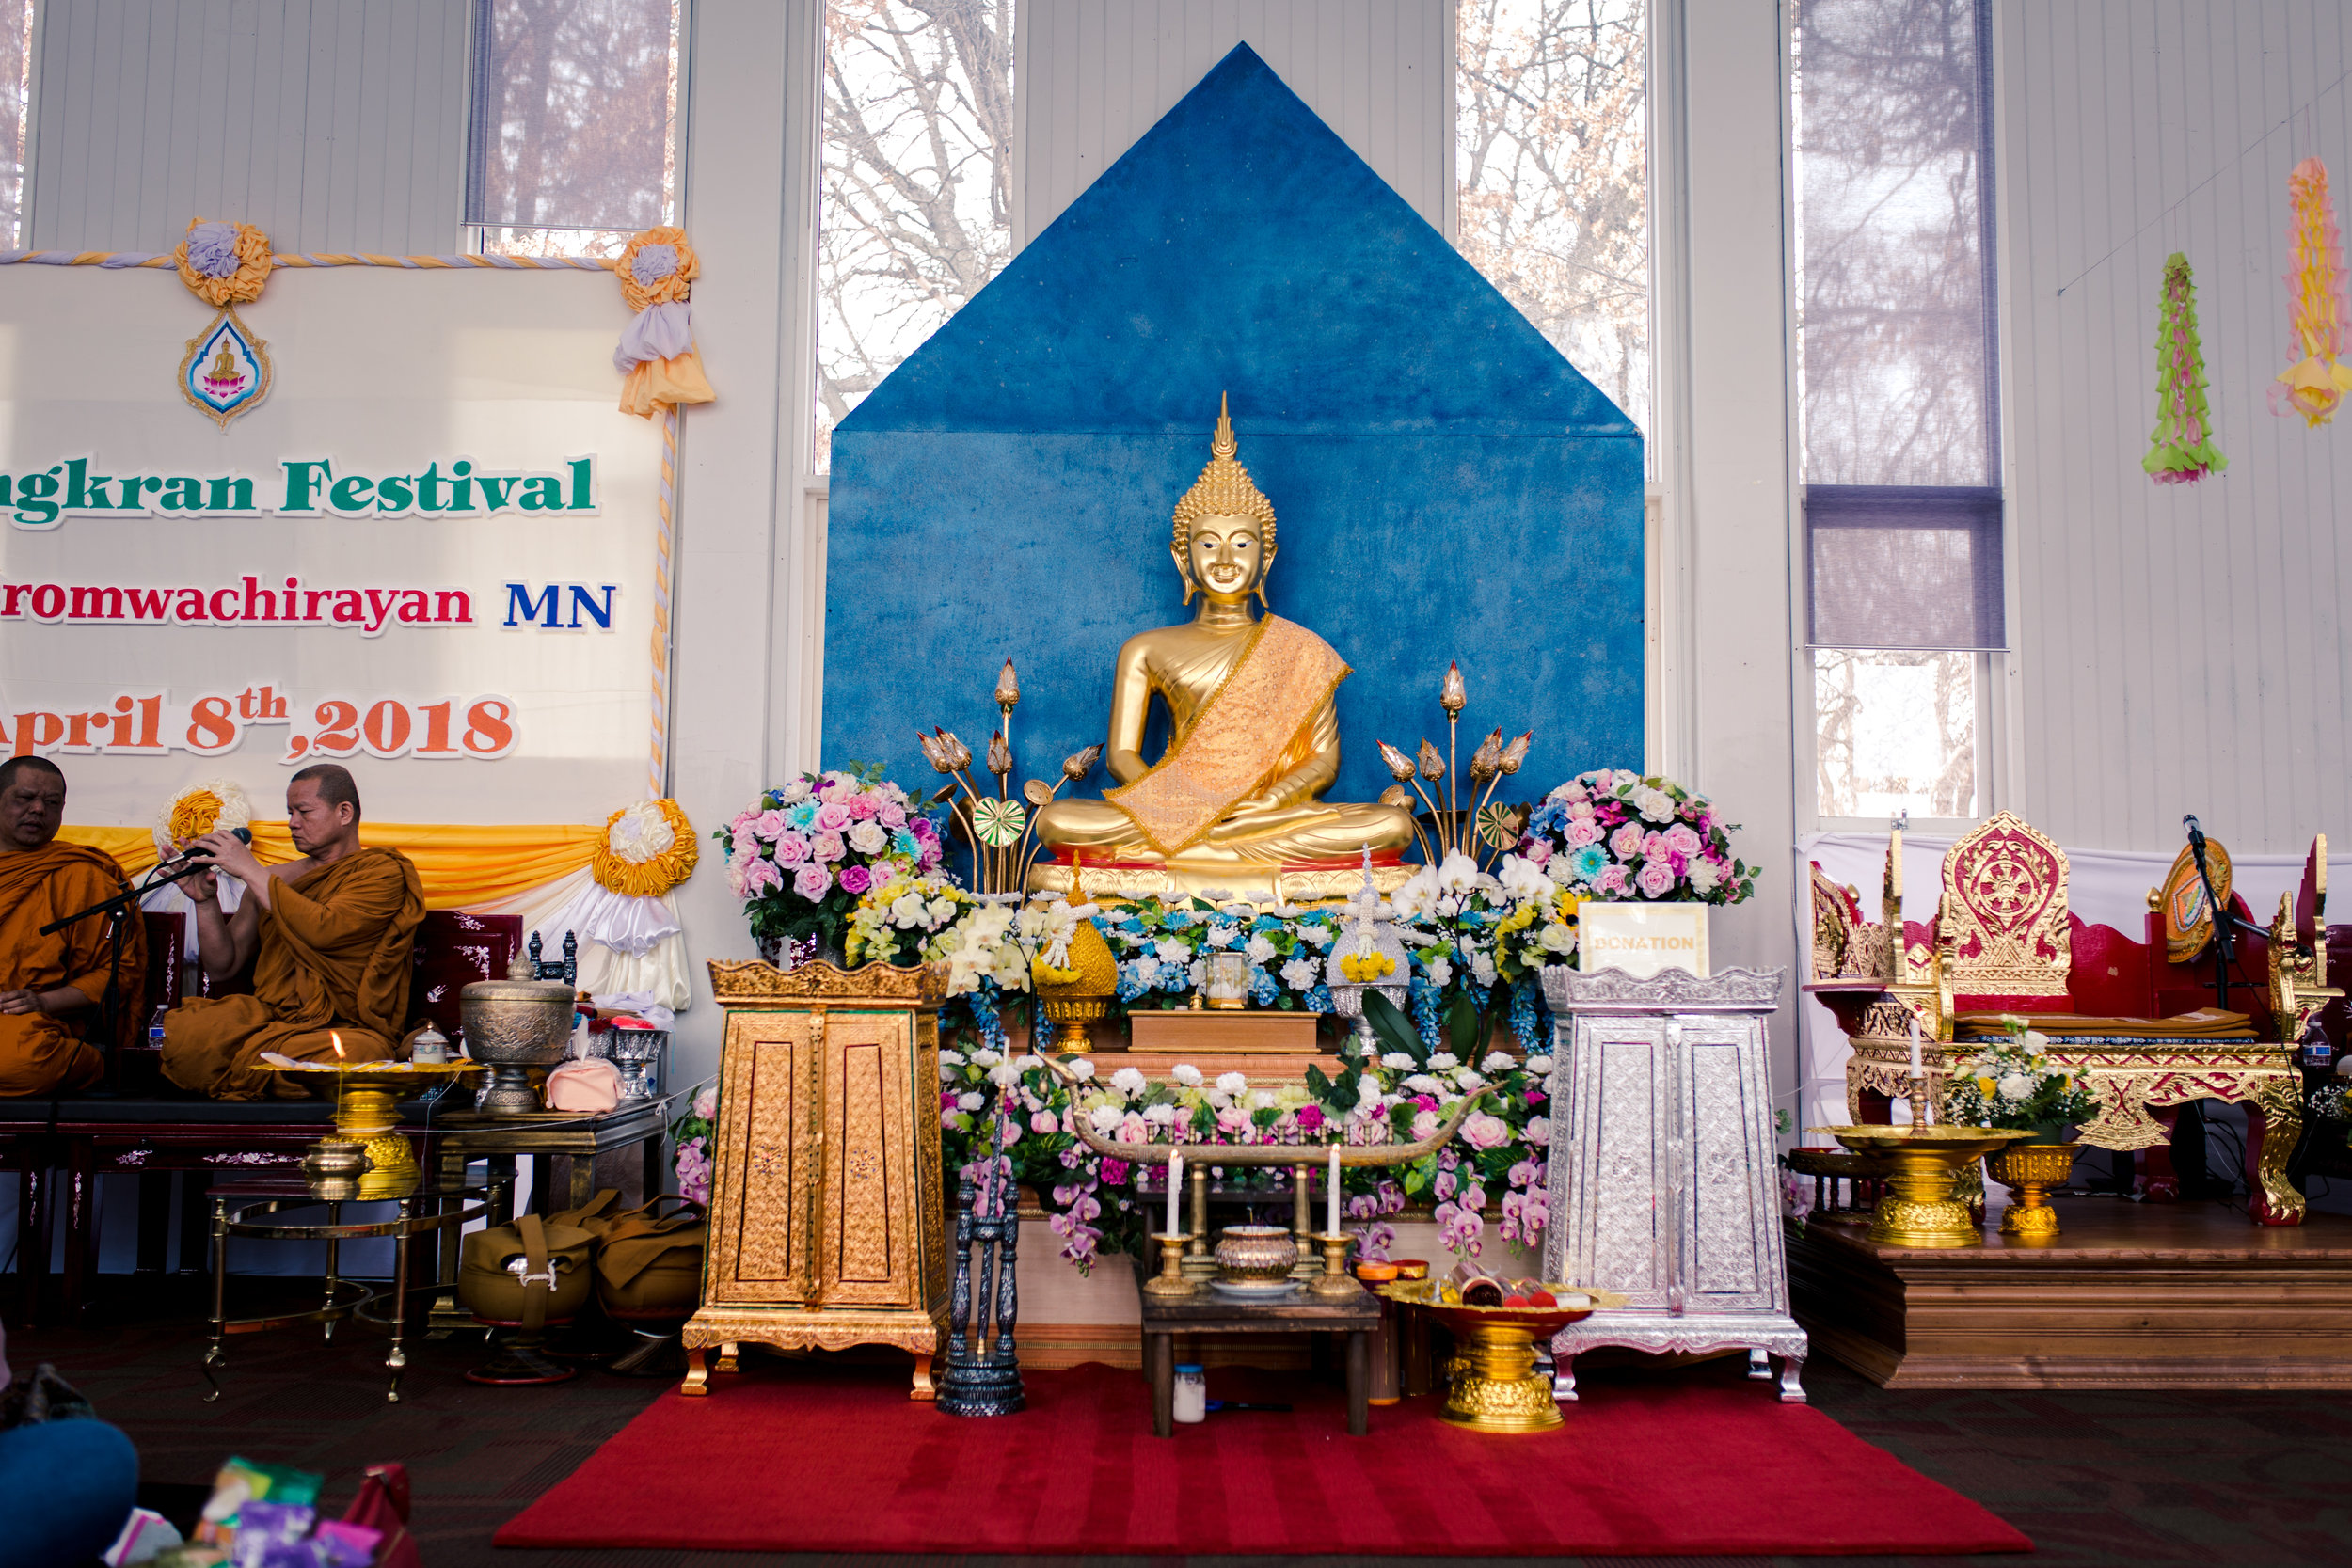 Happy Thai New Year!!! - We had the great privilege of celebrating Songkran with Wat Promwachirayan this Sunday.  This festival of unity is welcome to all where many offer gifts of food for the monks to begin the new year.